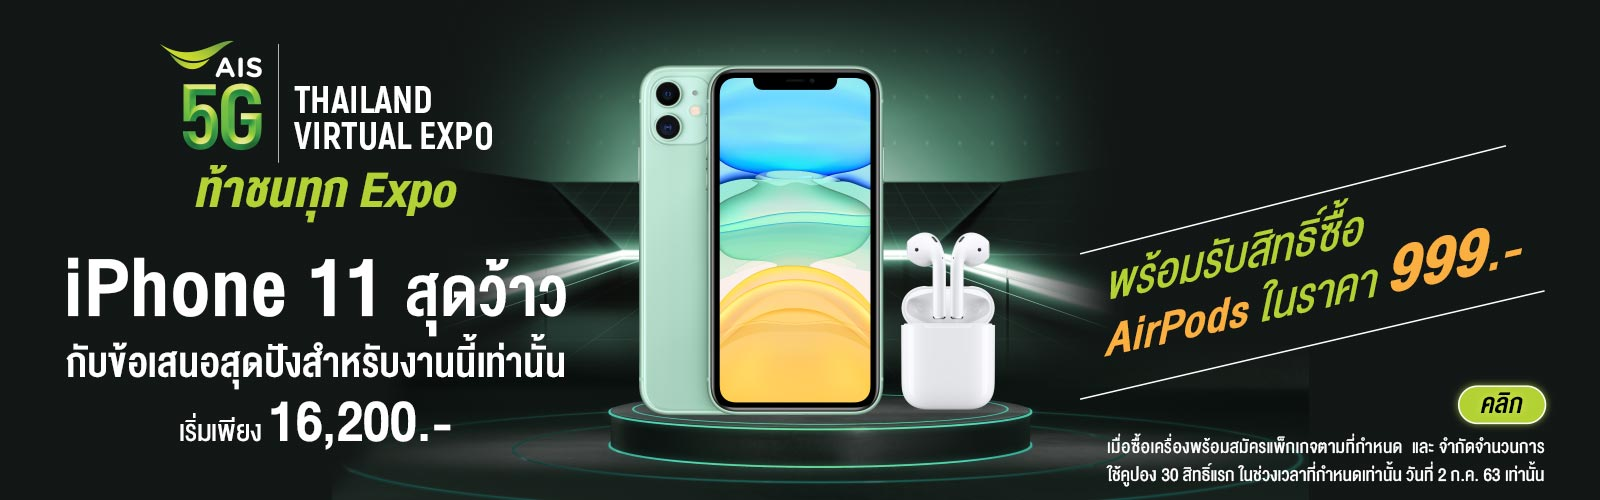 iPhone11 get airpods 999_TH